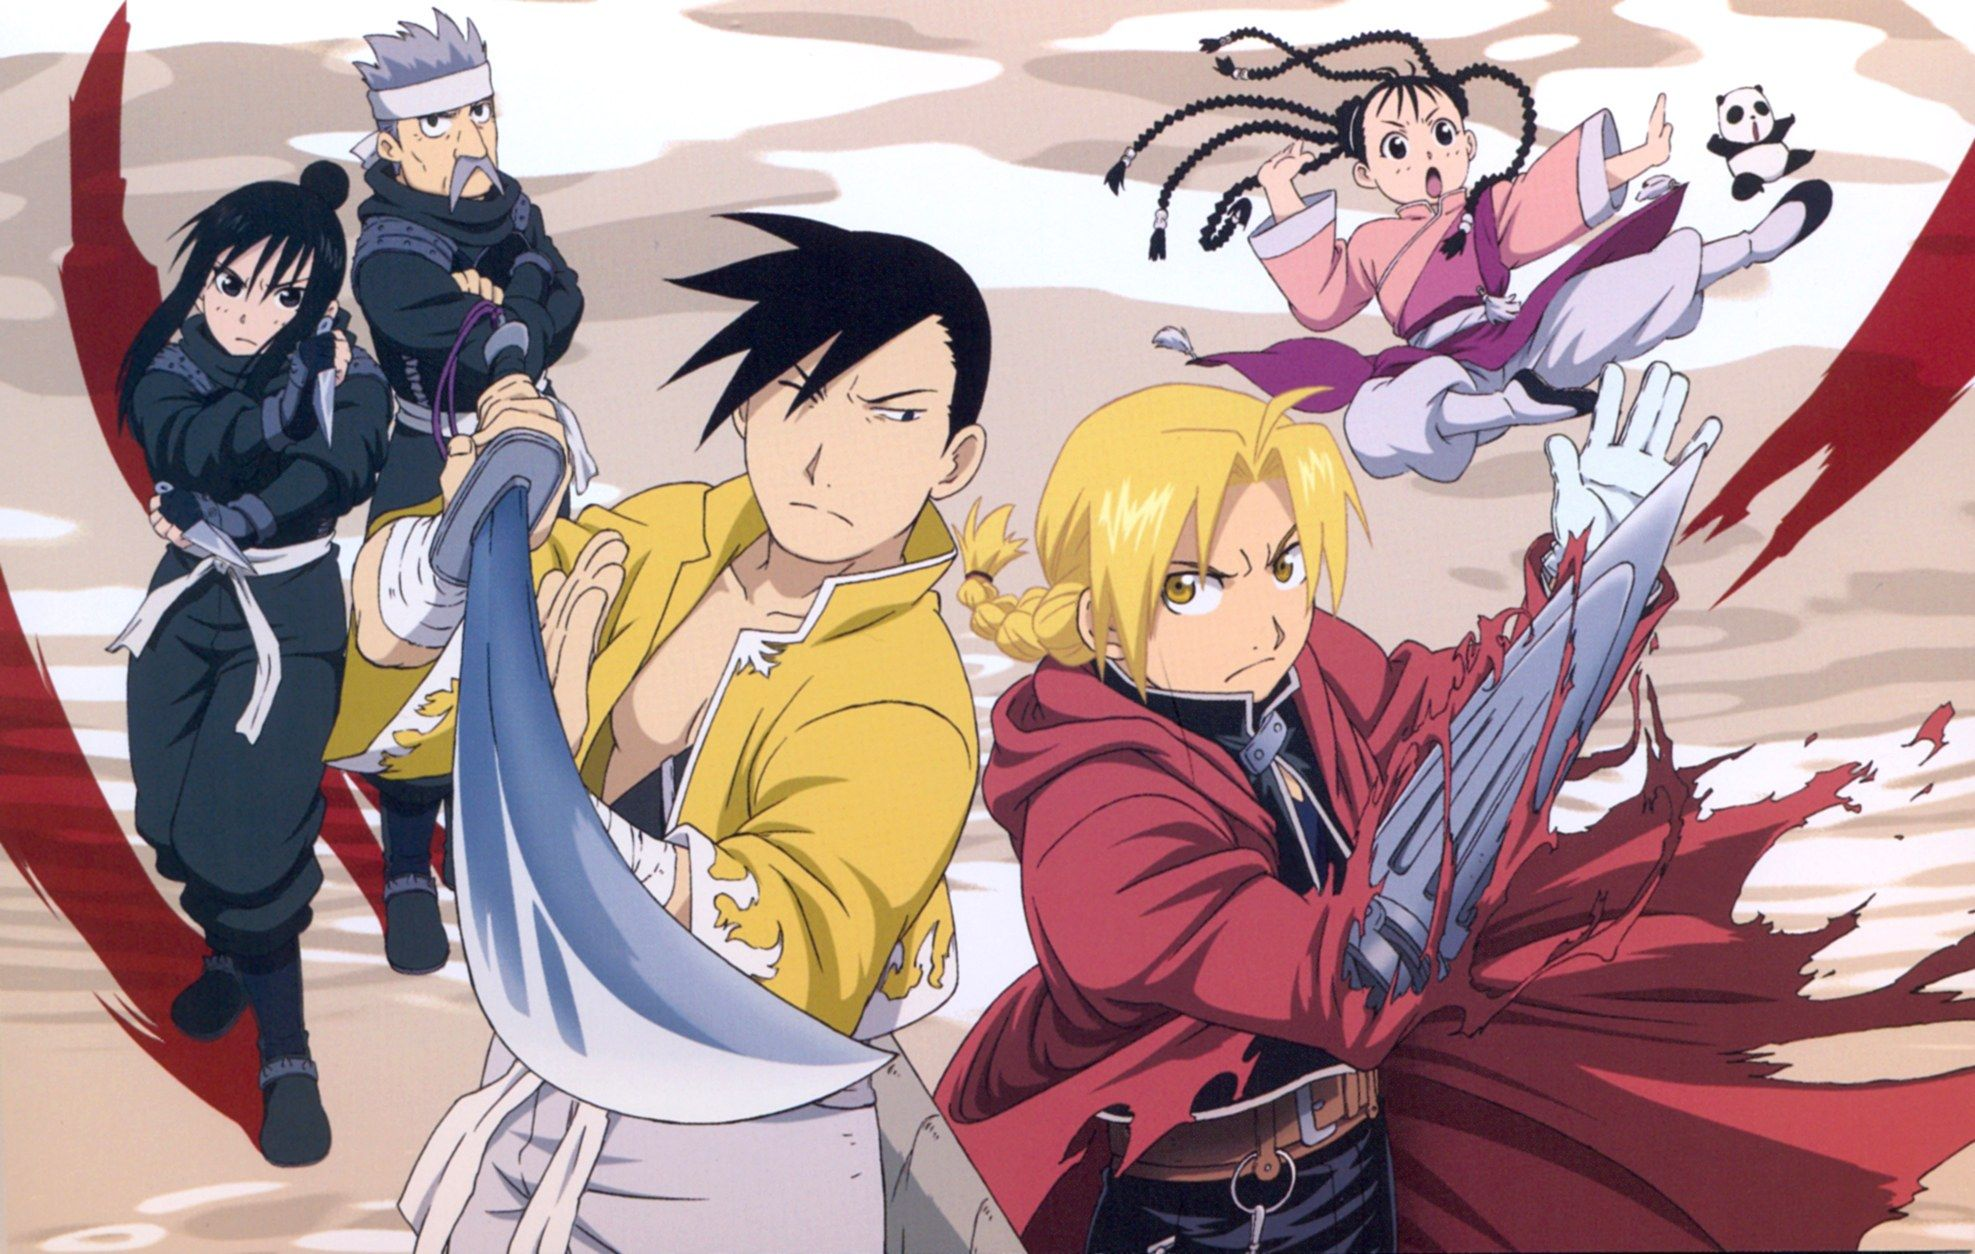 Tags Fullmetal Alchemist Edward Elric Ling Yao Brotherhood May Chang Lan Fan Official Art Fu FMA Xing Country